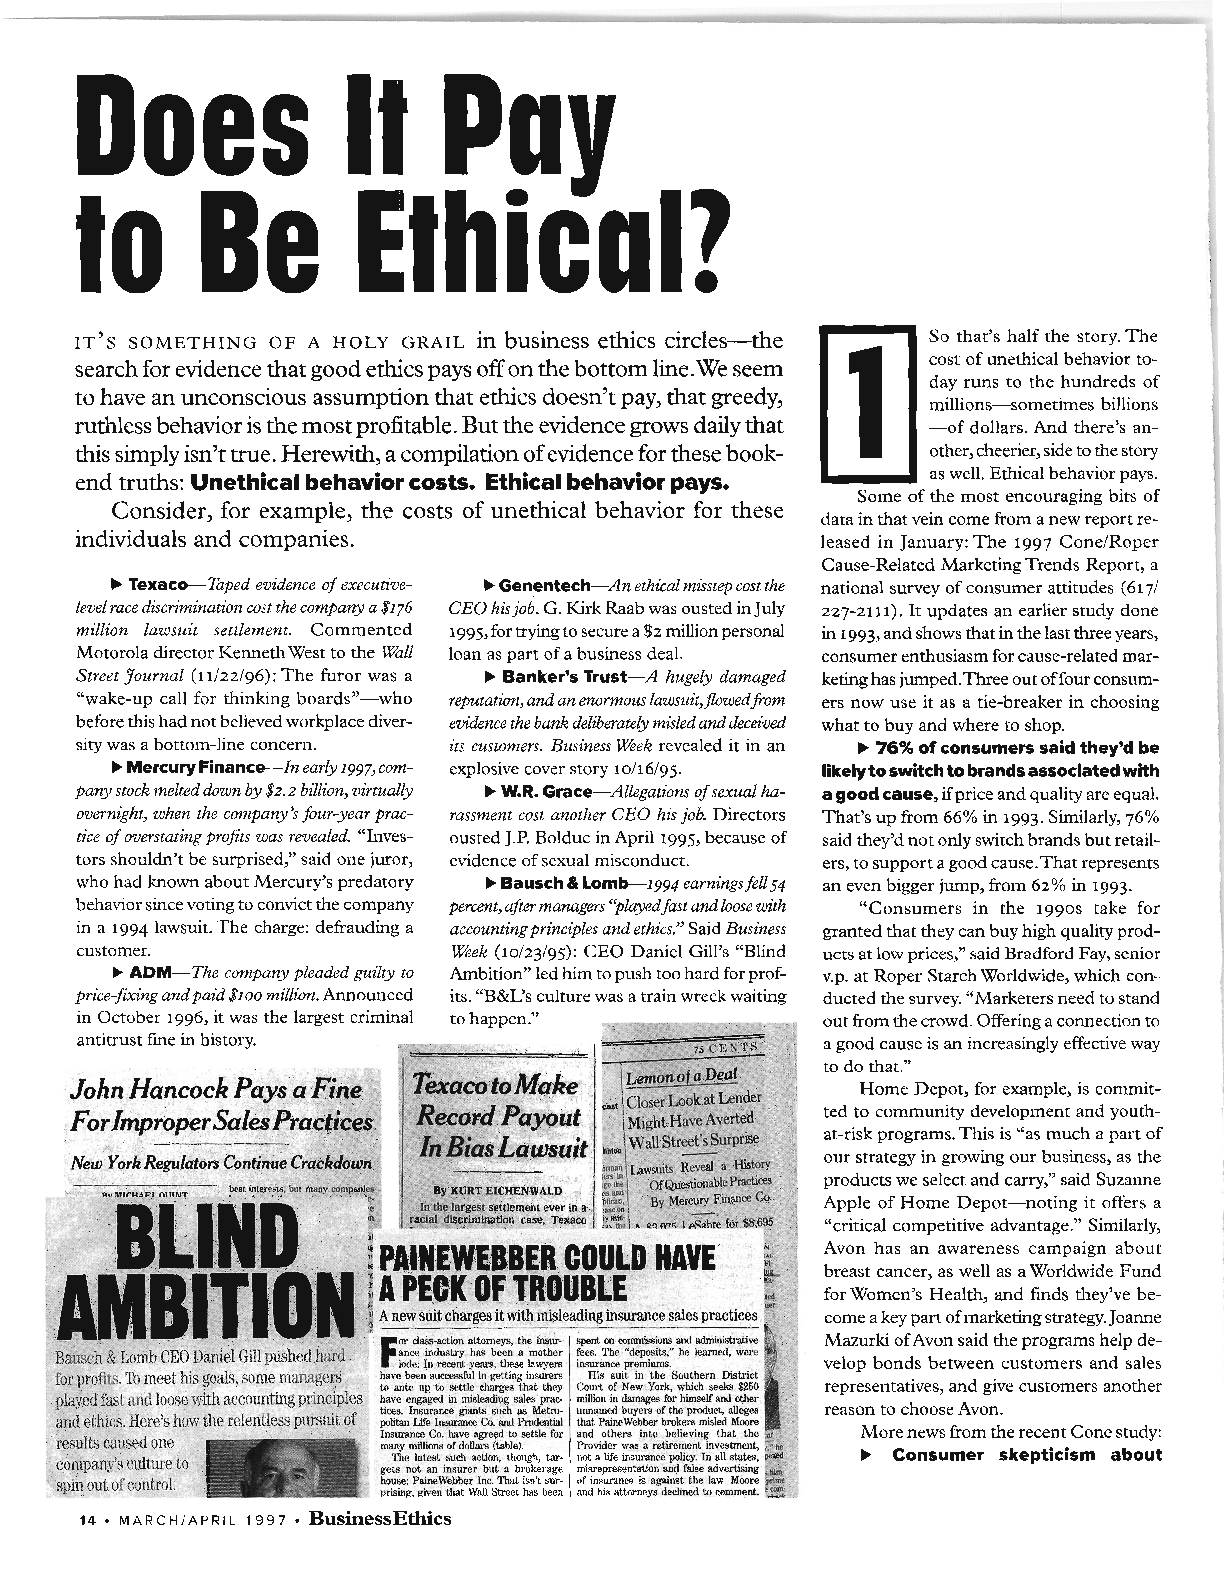 Does It Pay To Be Ethical? - - Business Ethics: The Magazine